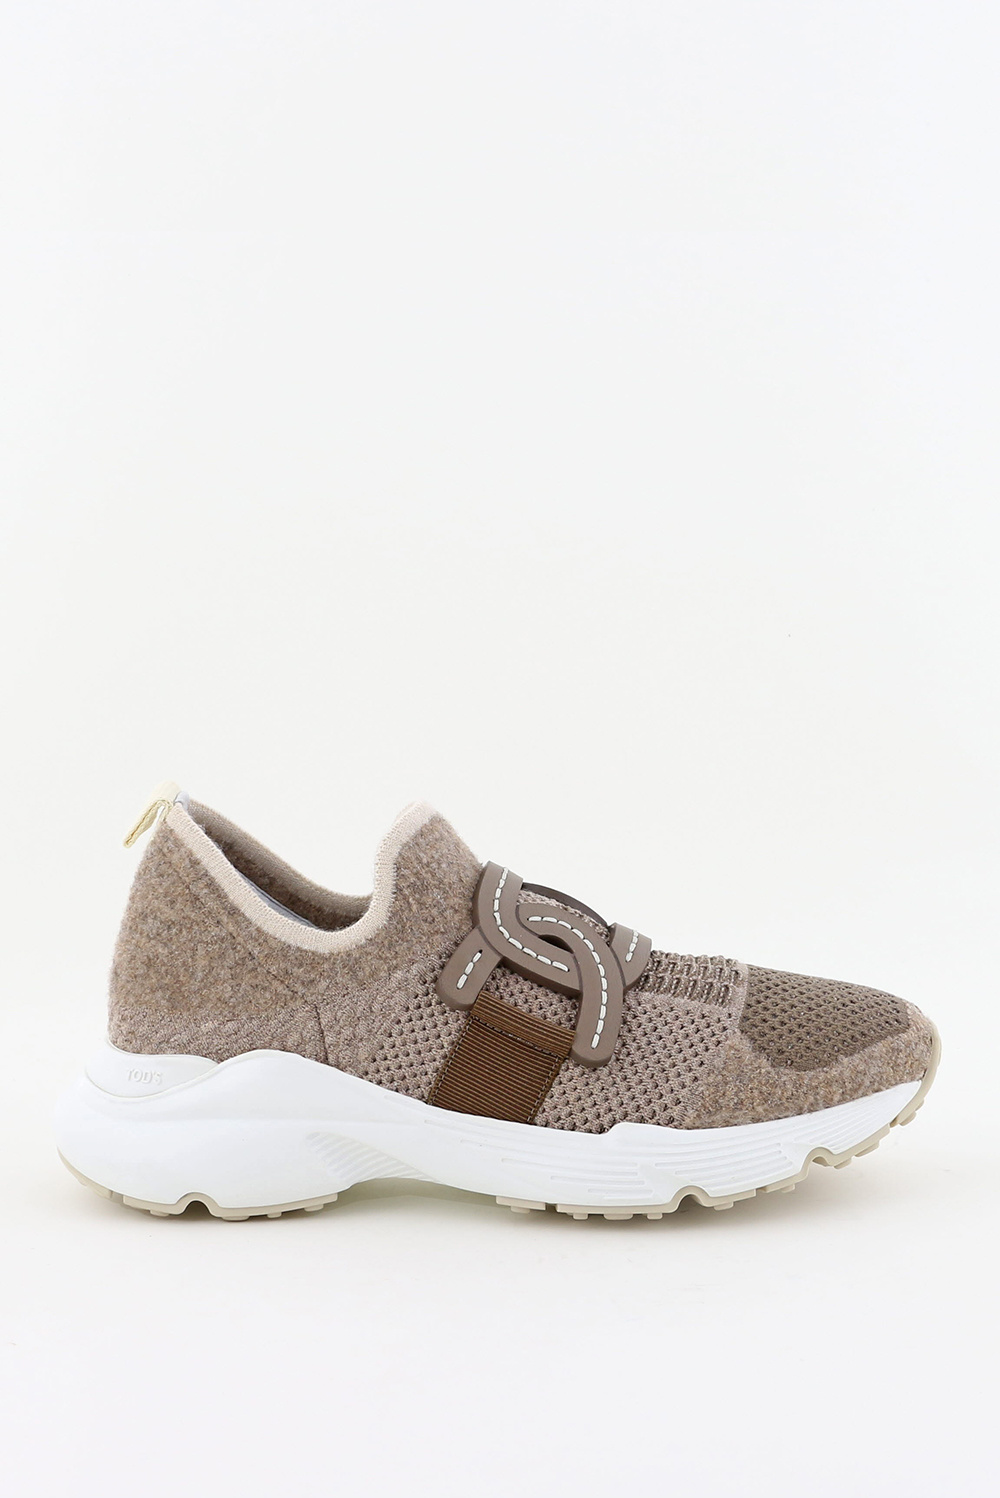 Tods sneakers XXW54C0EM61Q taupe